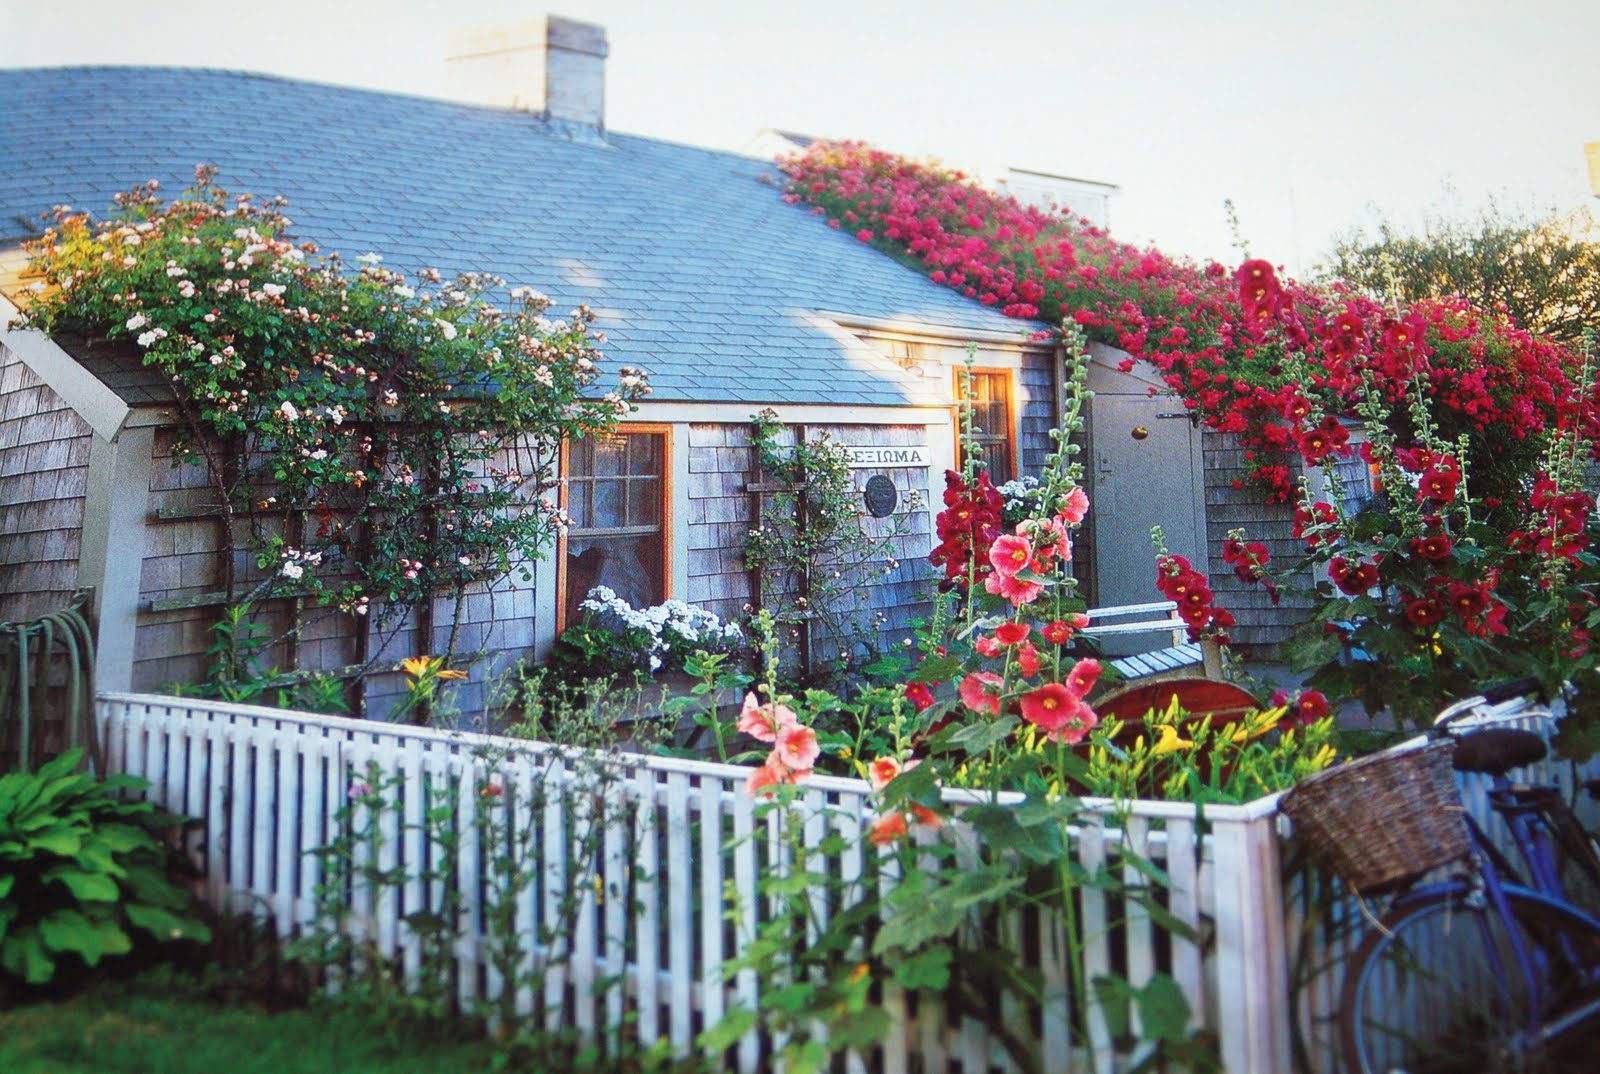 Bygone living sea captains 39 houses and rose covered cottages for Nantucket by the sea